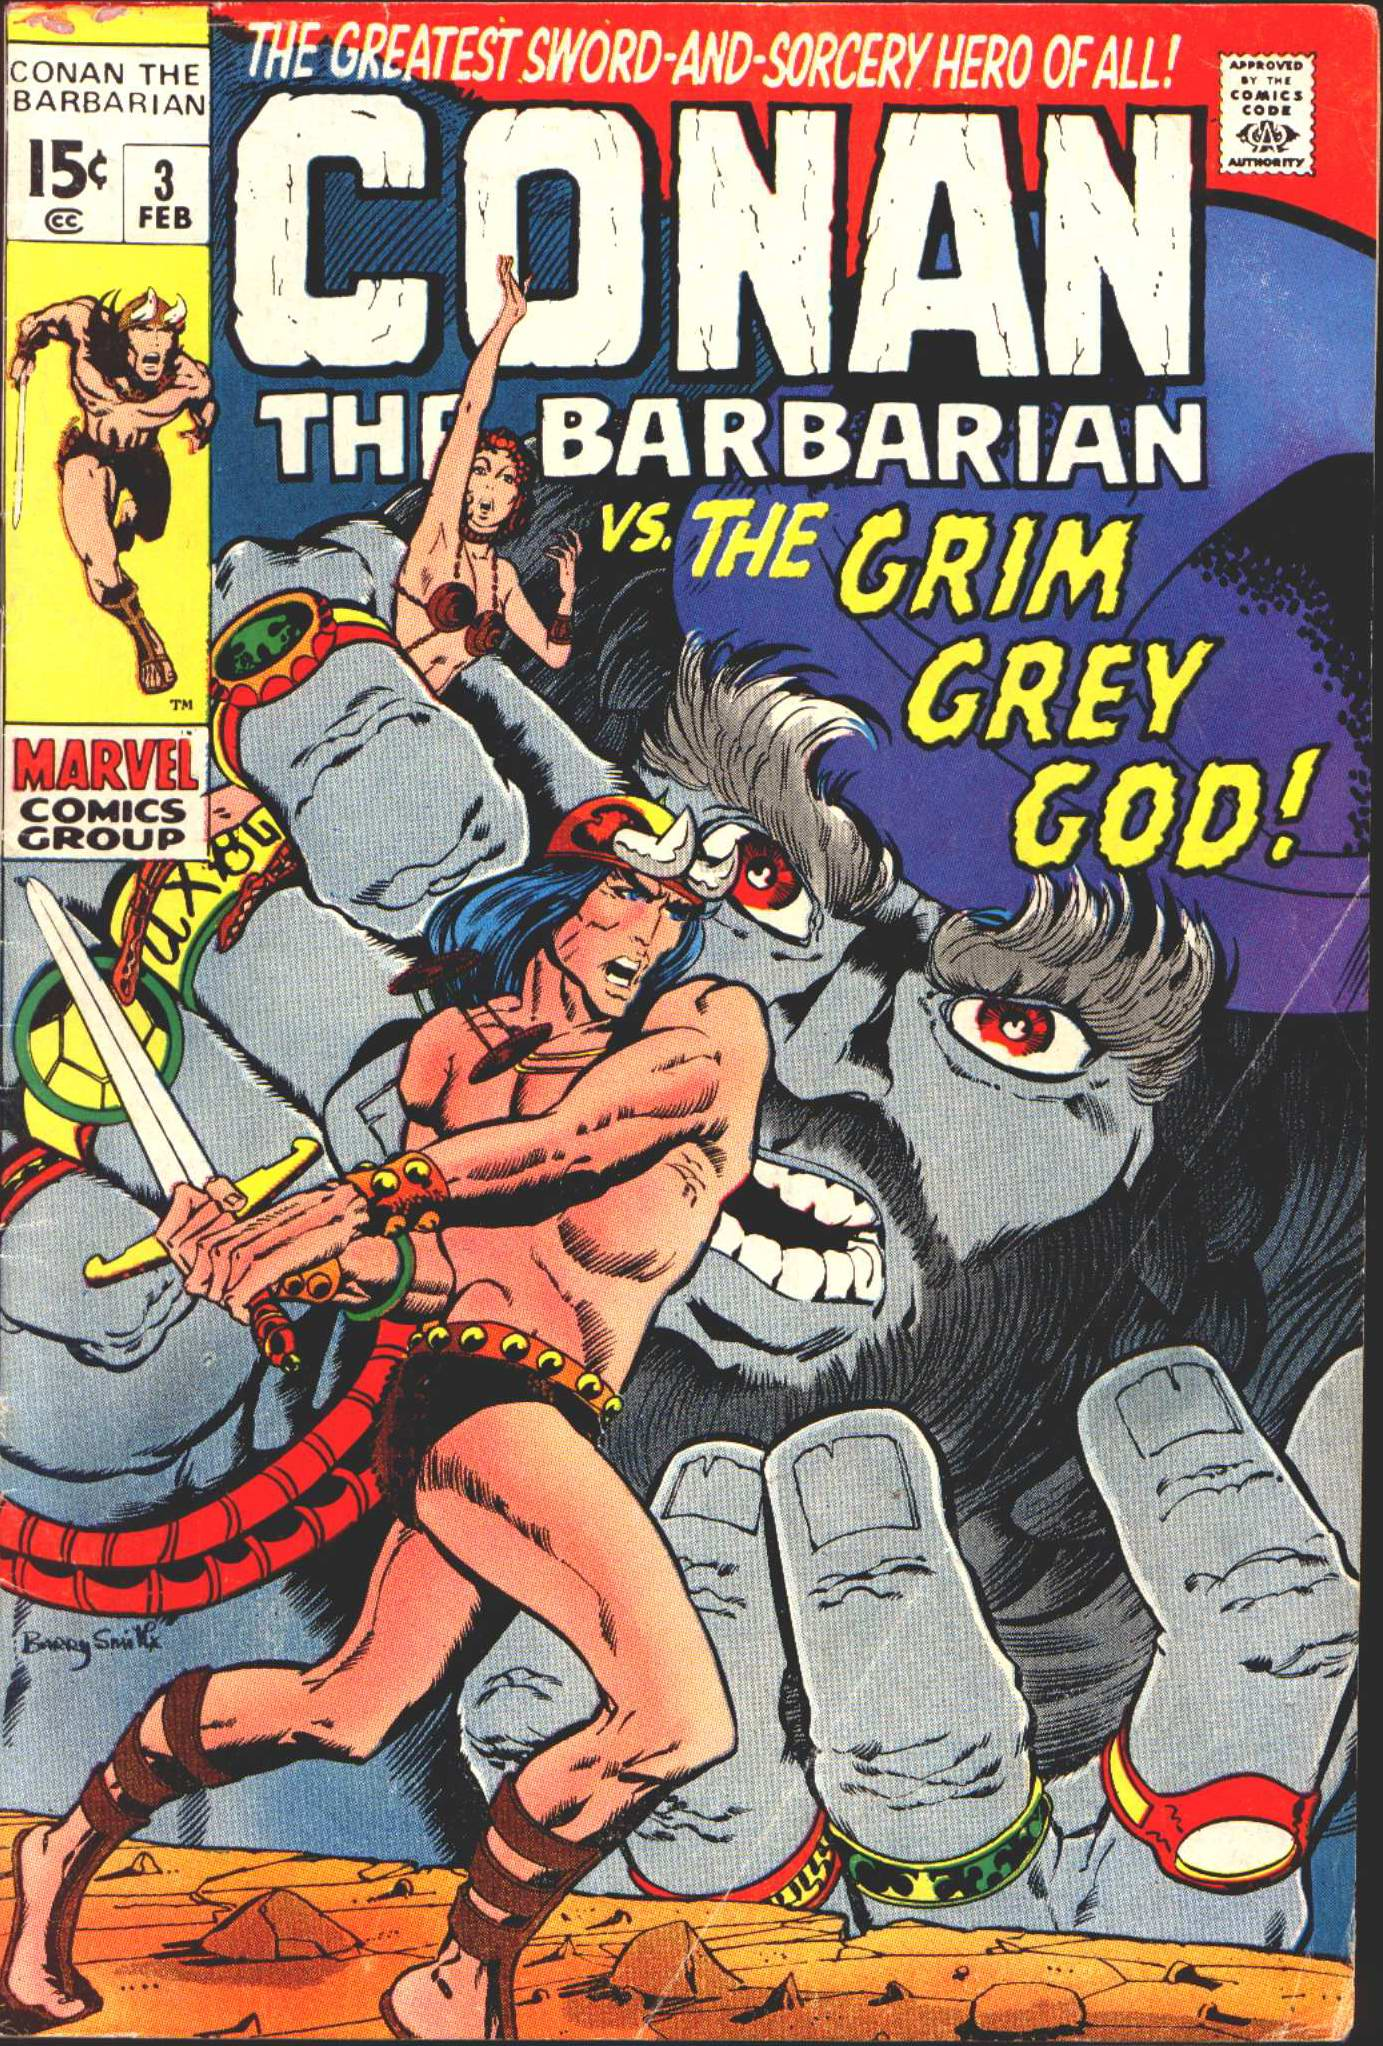 Conan the Barbarian (1970) Issue #3 #15 - English 1